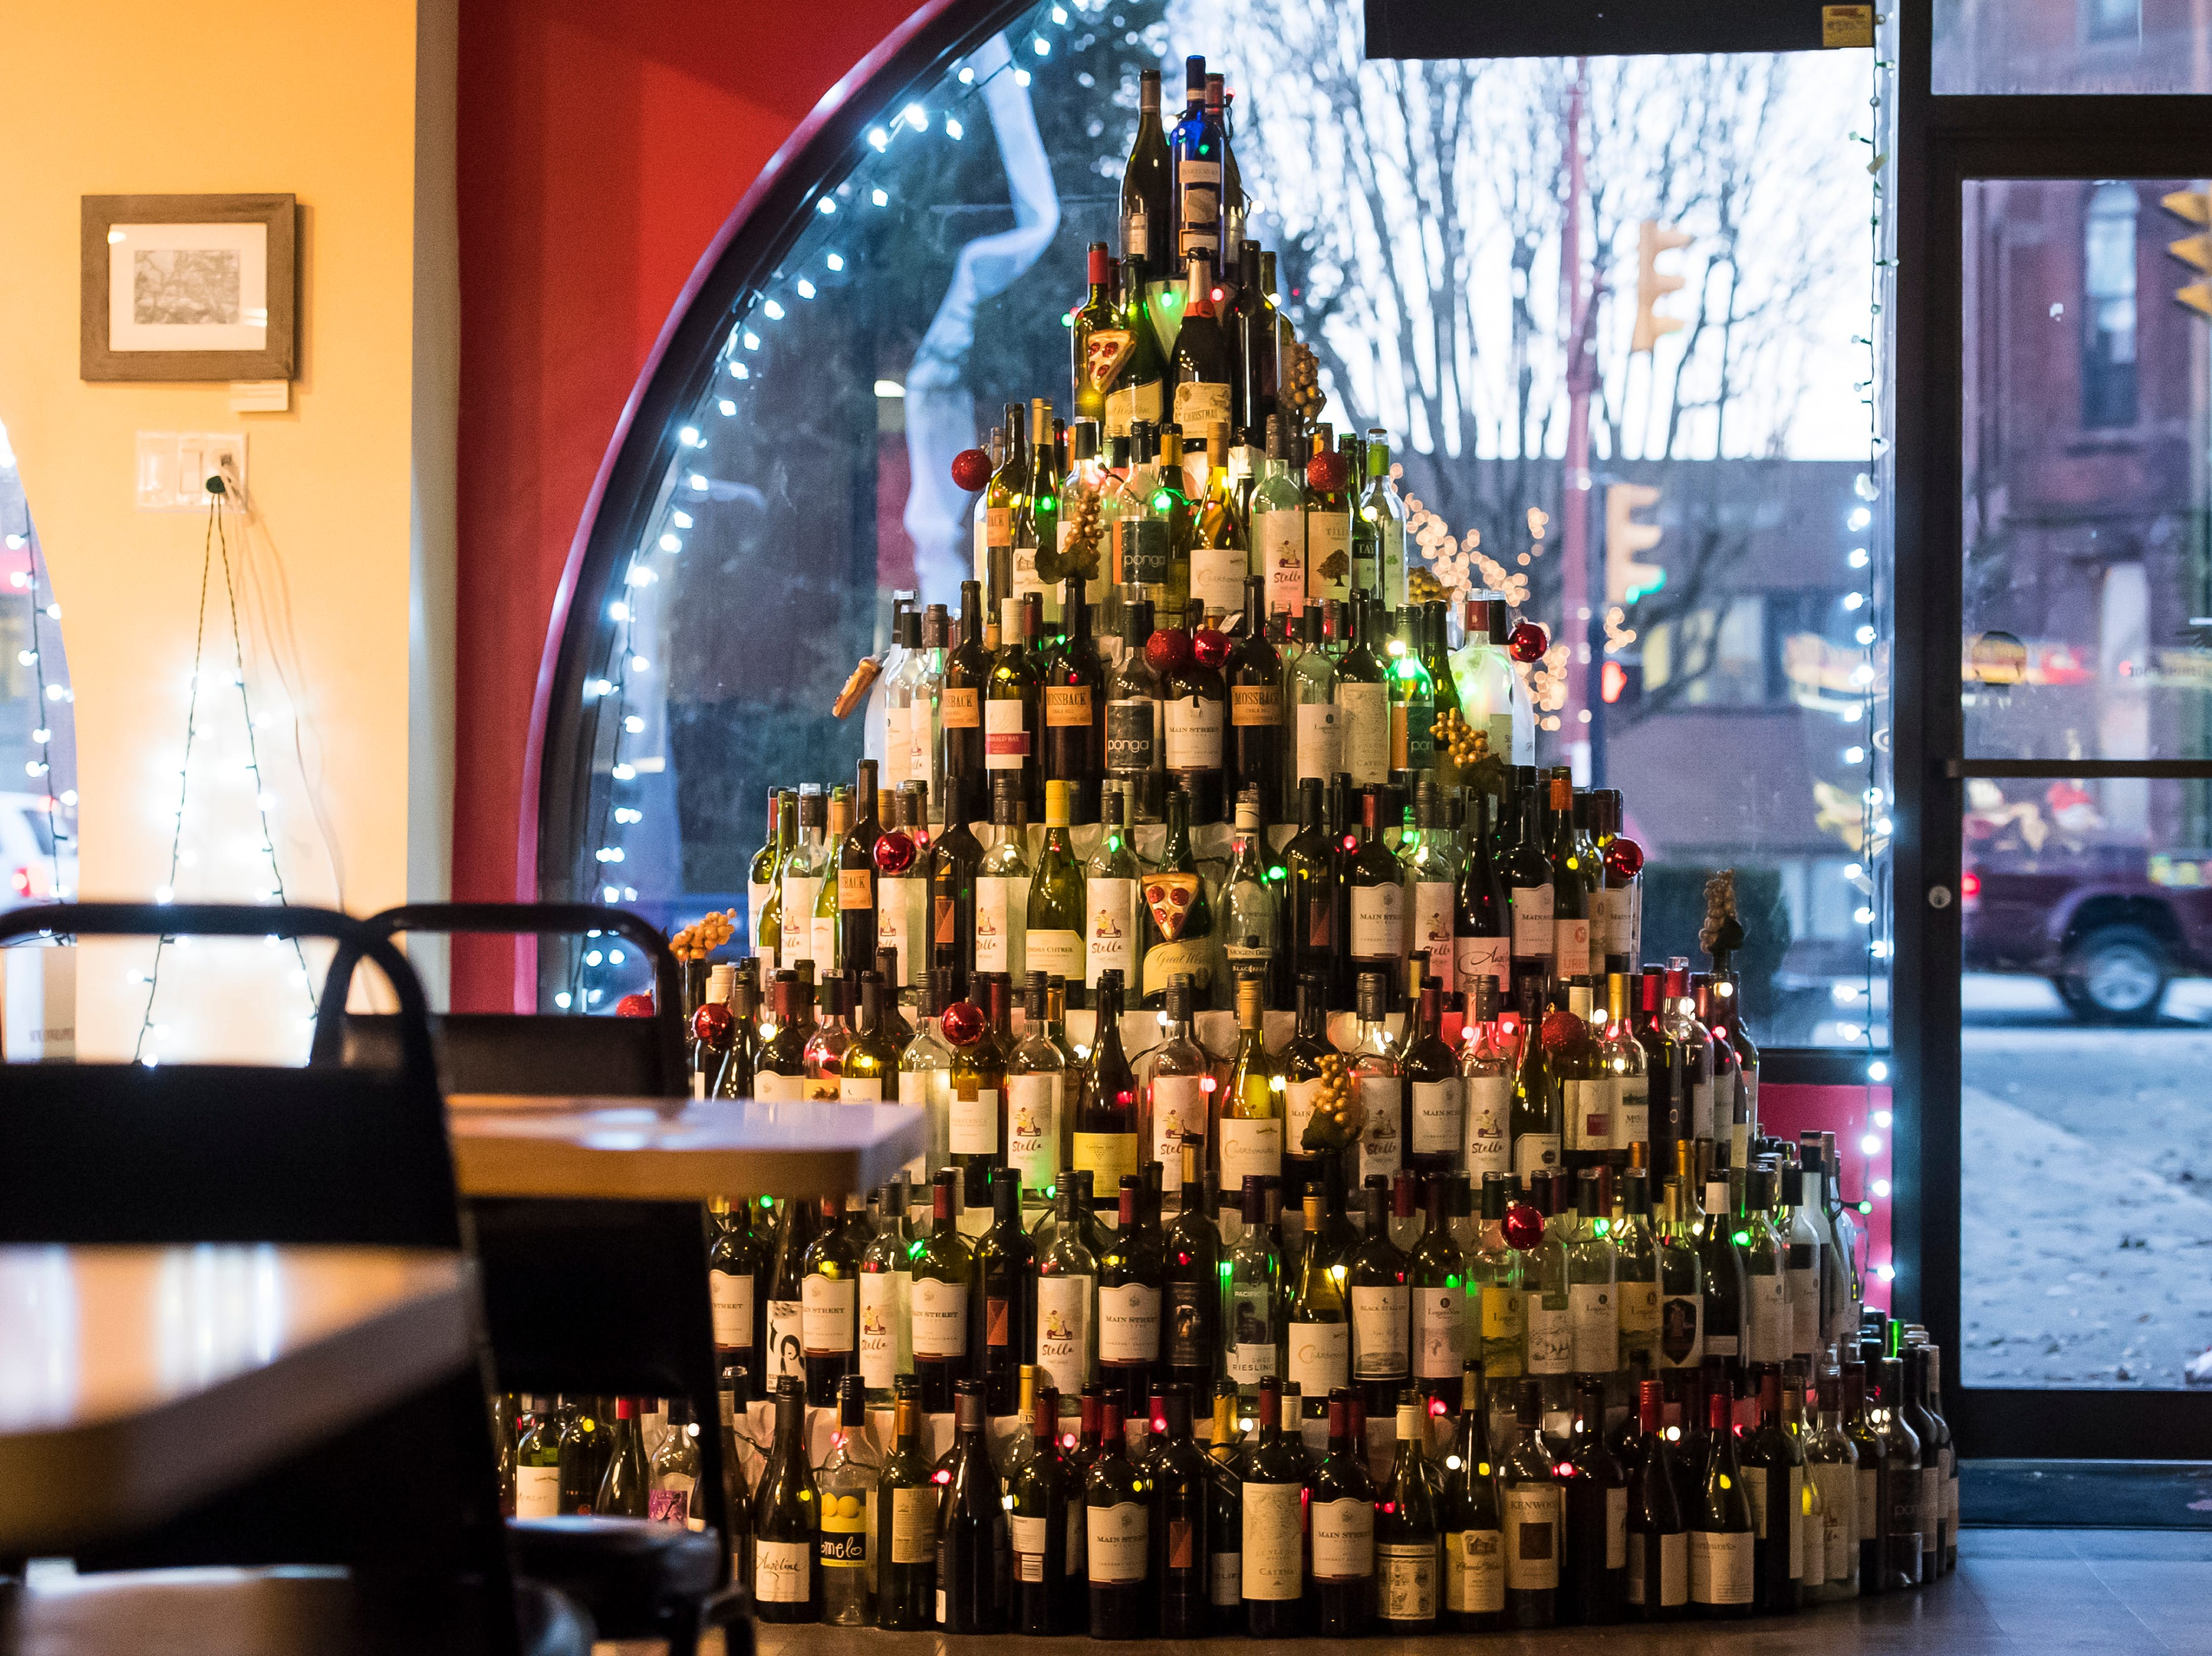 Divino Pizzeria & Grille located at 1 Center Square. Visit mainstreethanover.org for details about Christmas Tree Wars.